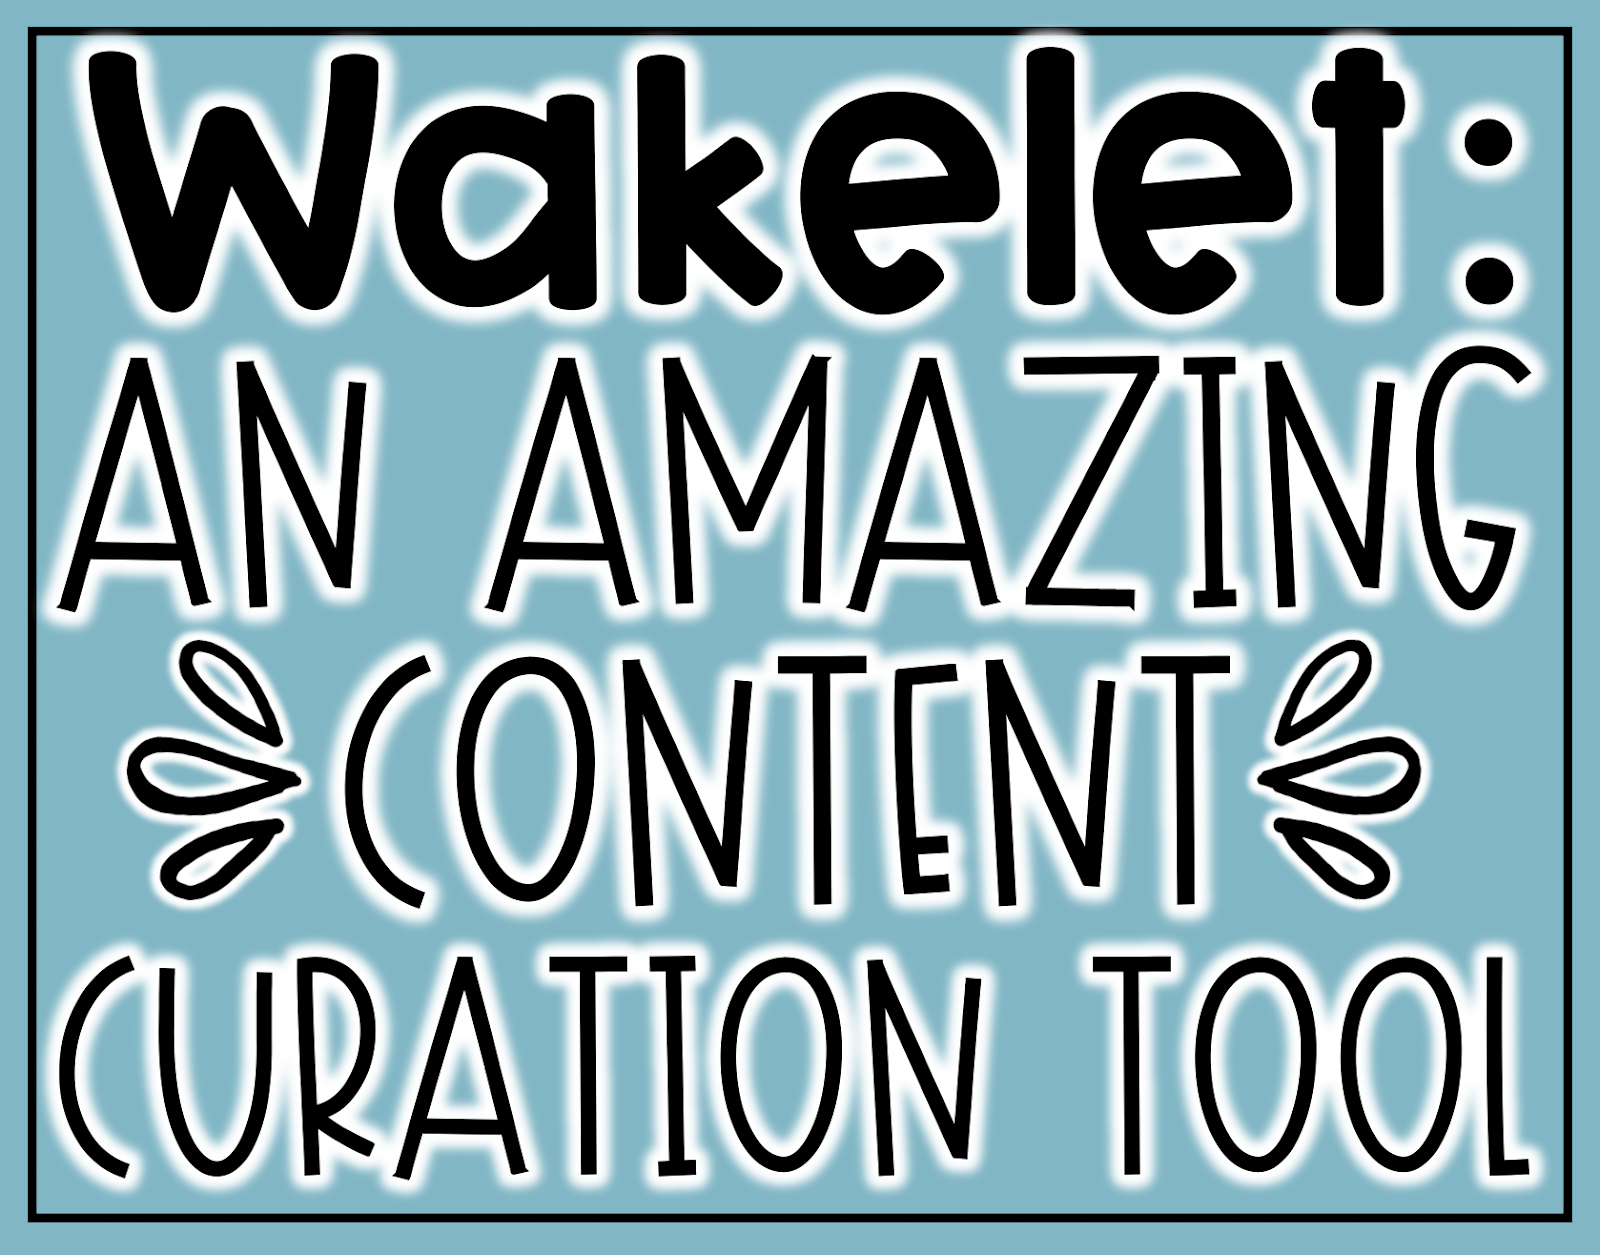 Wakelet: An Amazing Content Curation Tool